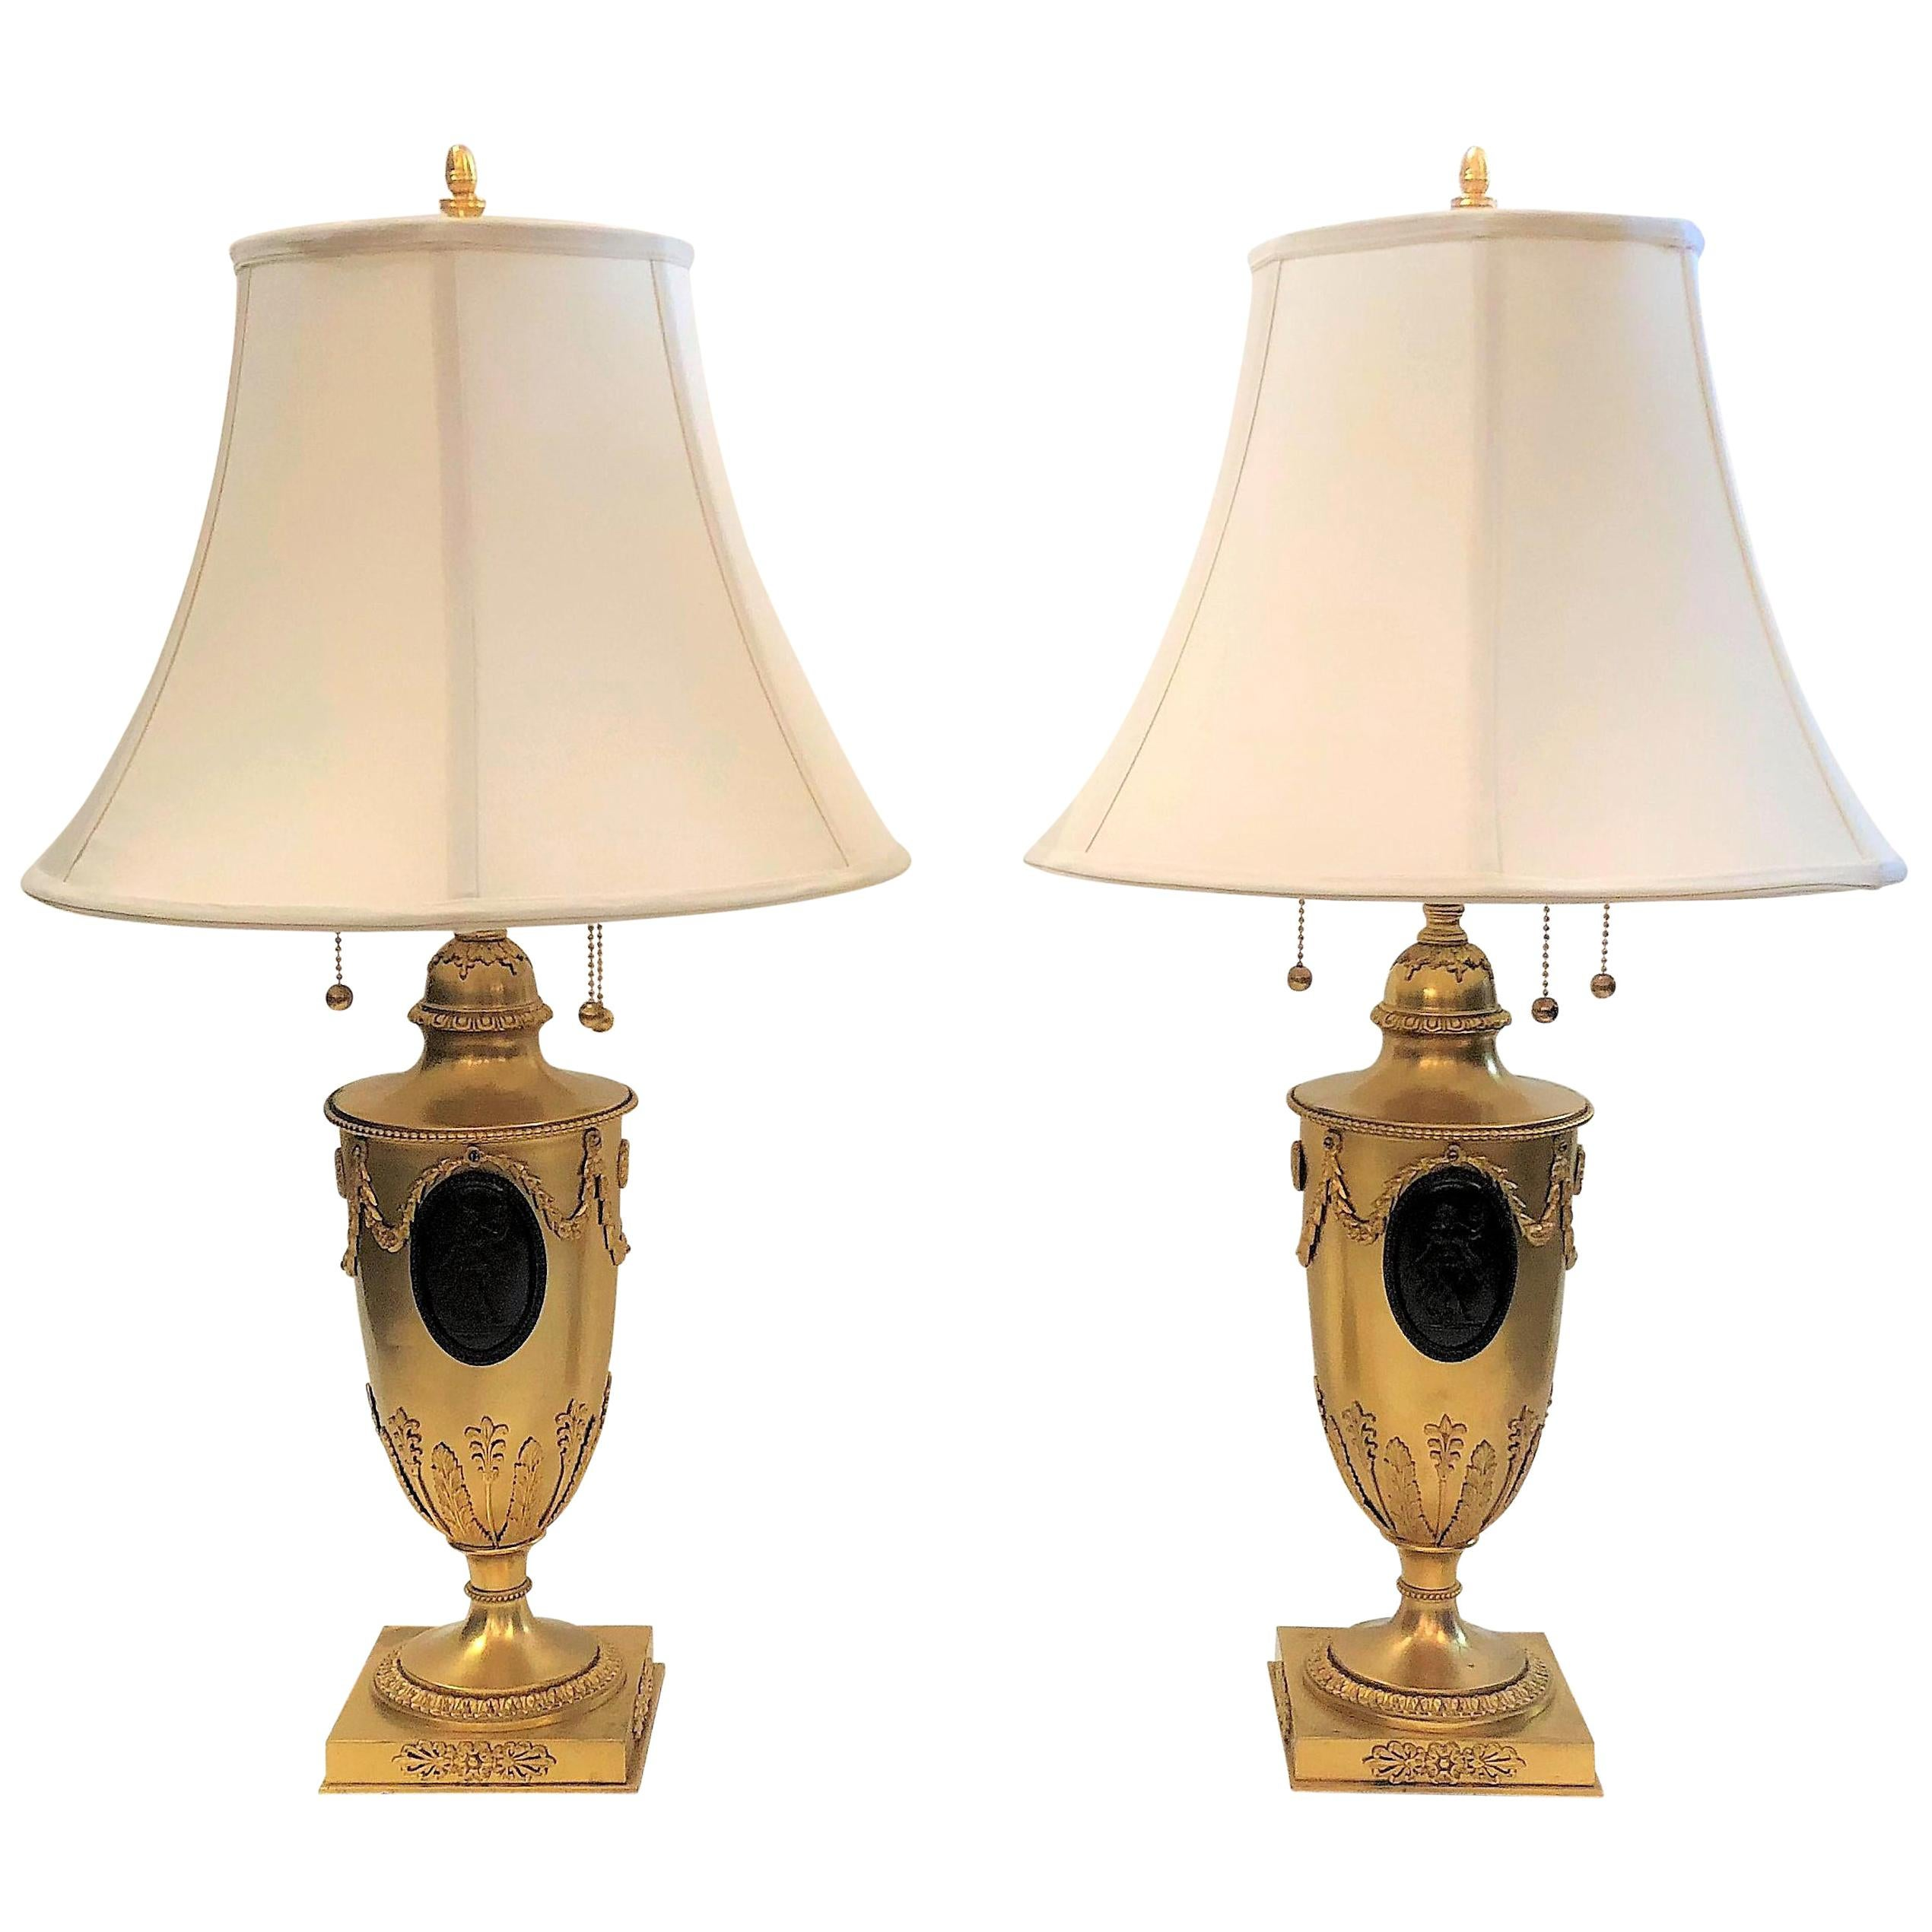 Pair of Antique French Bronze Dore Classical Urns Converted to Lamps